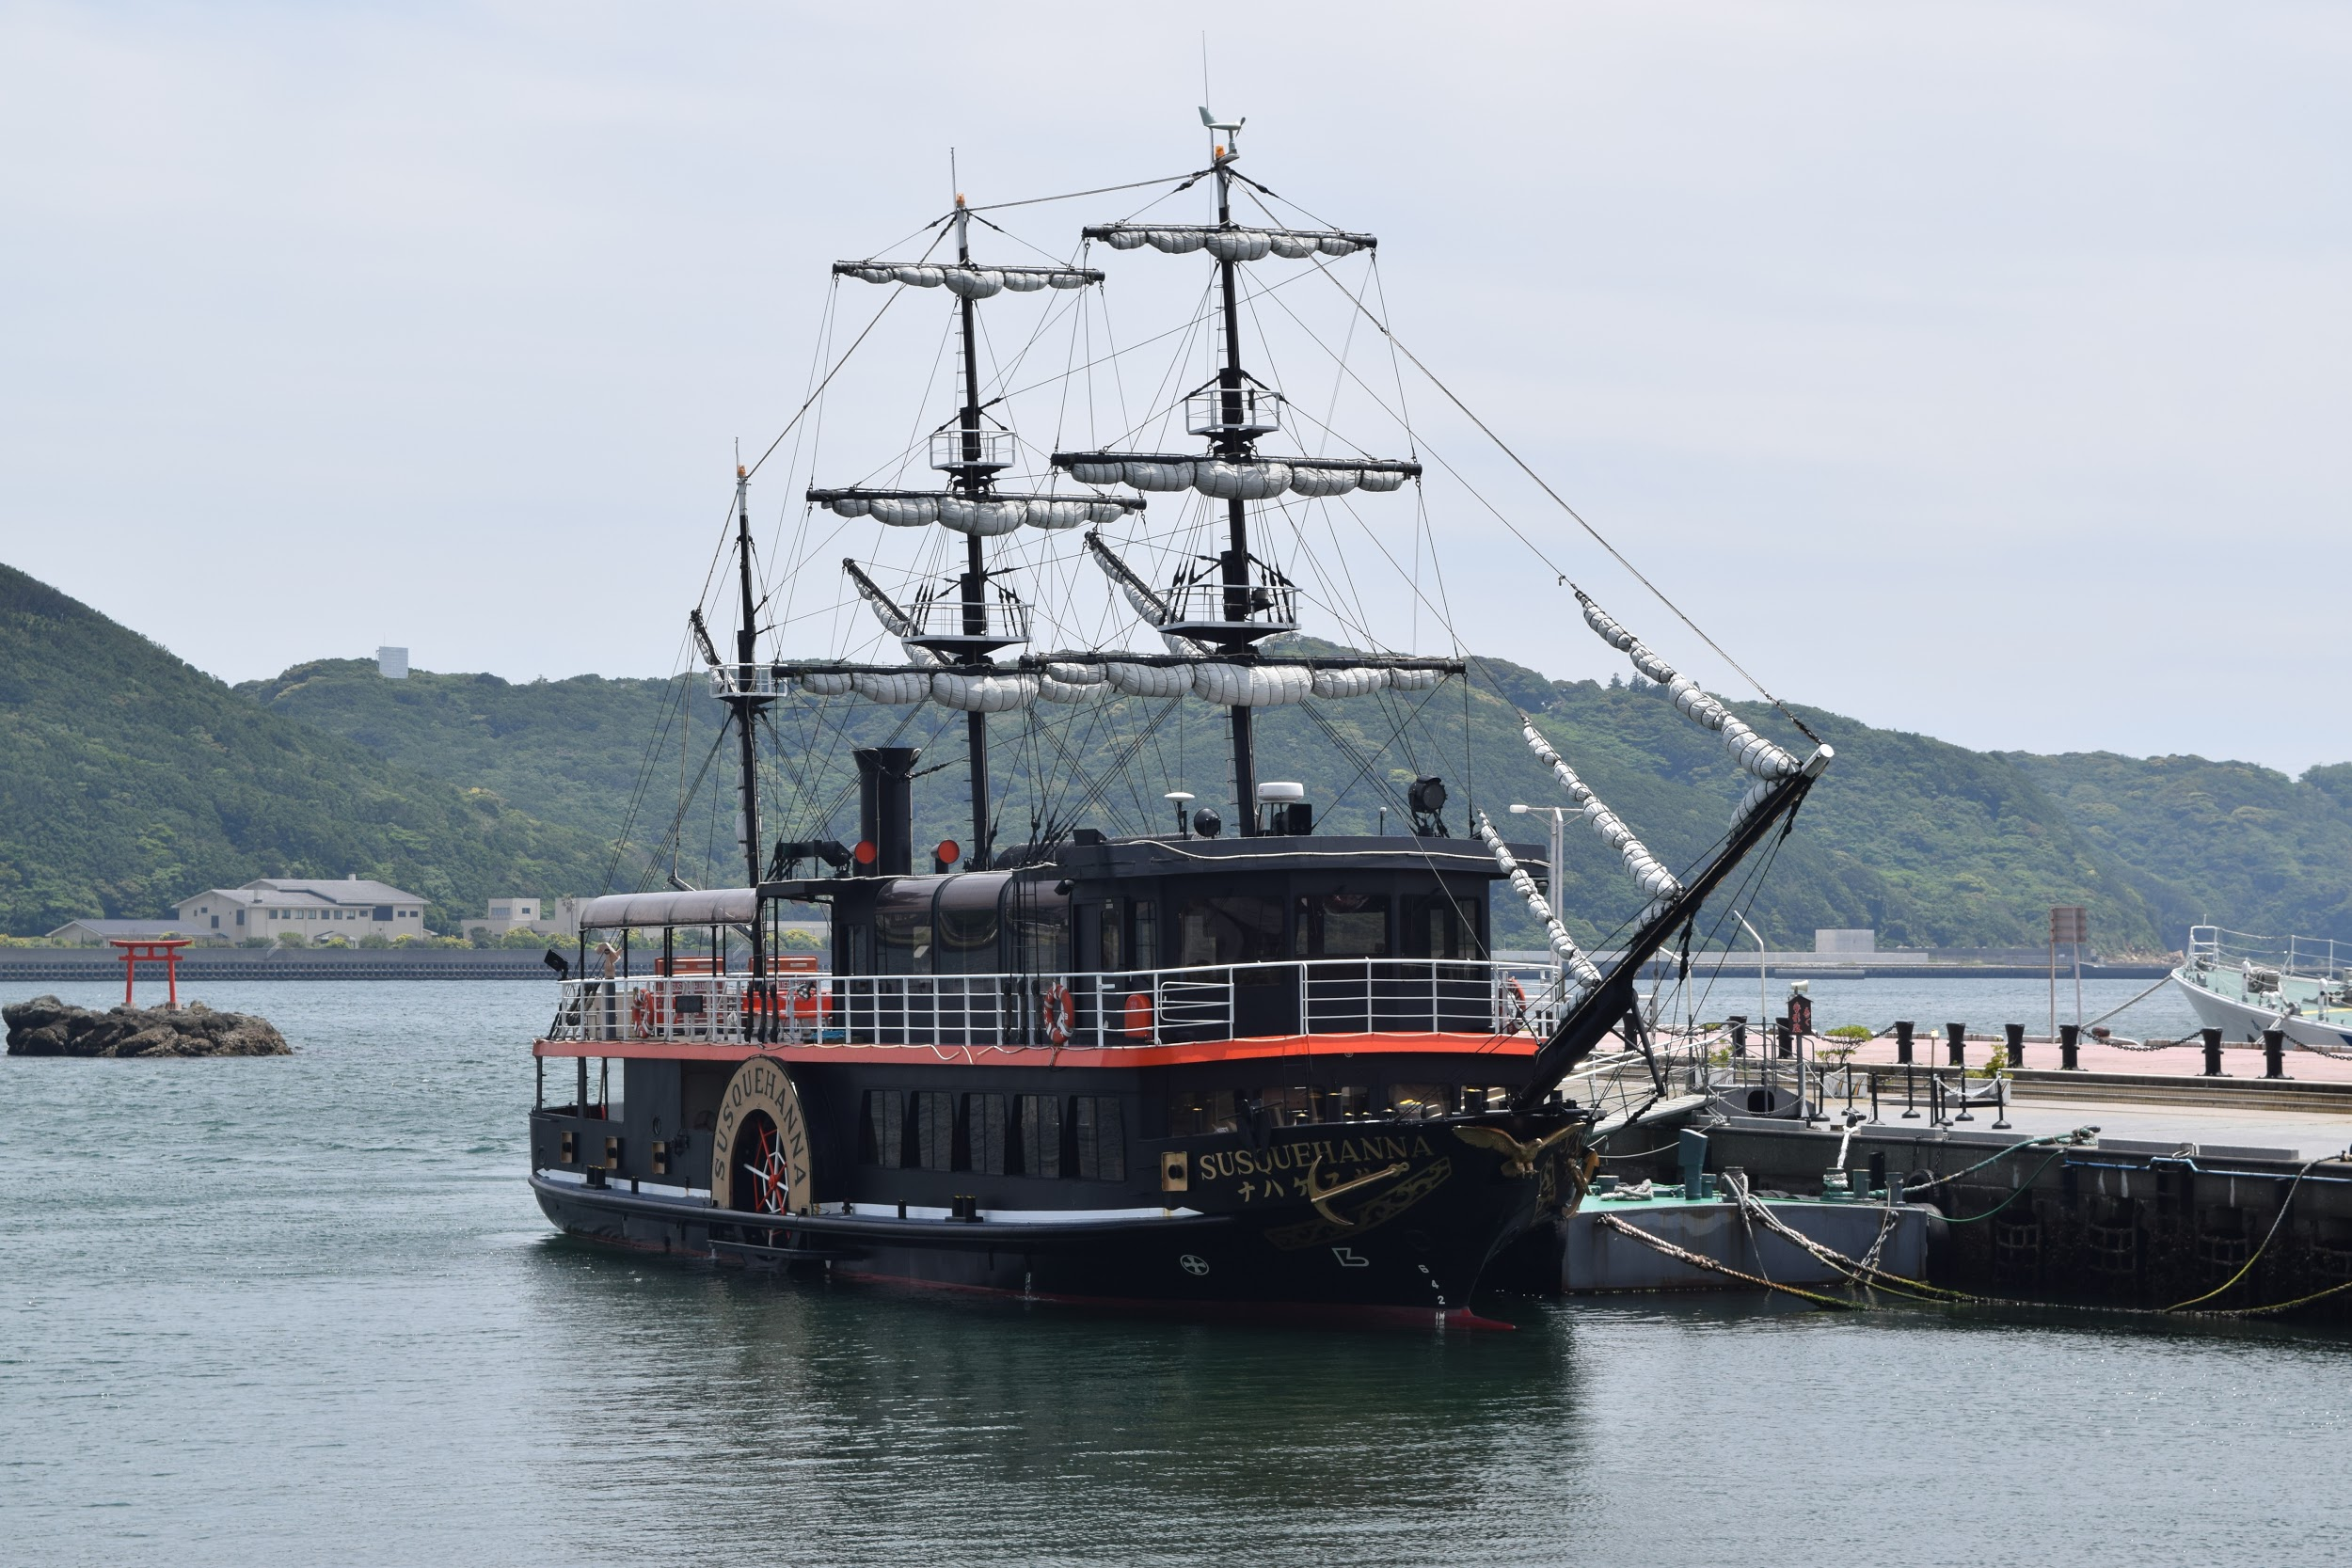 A picture of a Black Ship on the dock